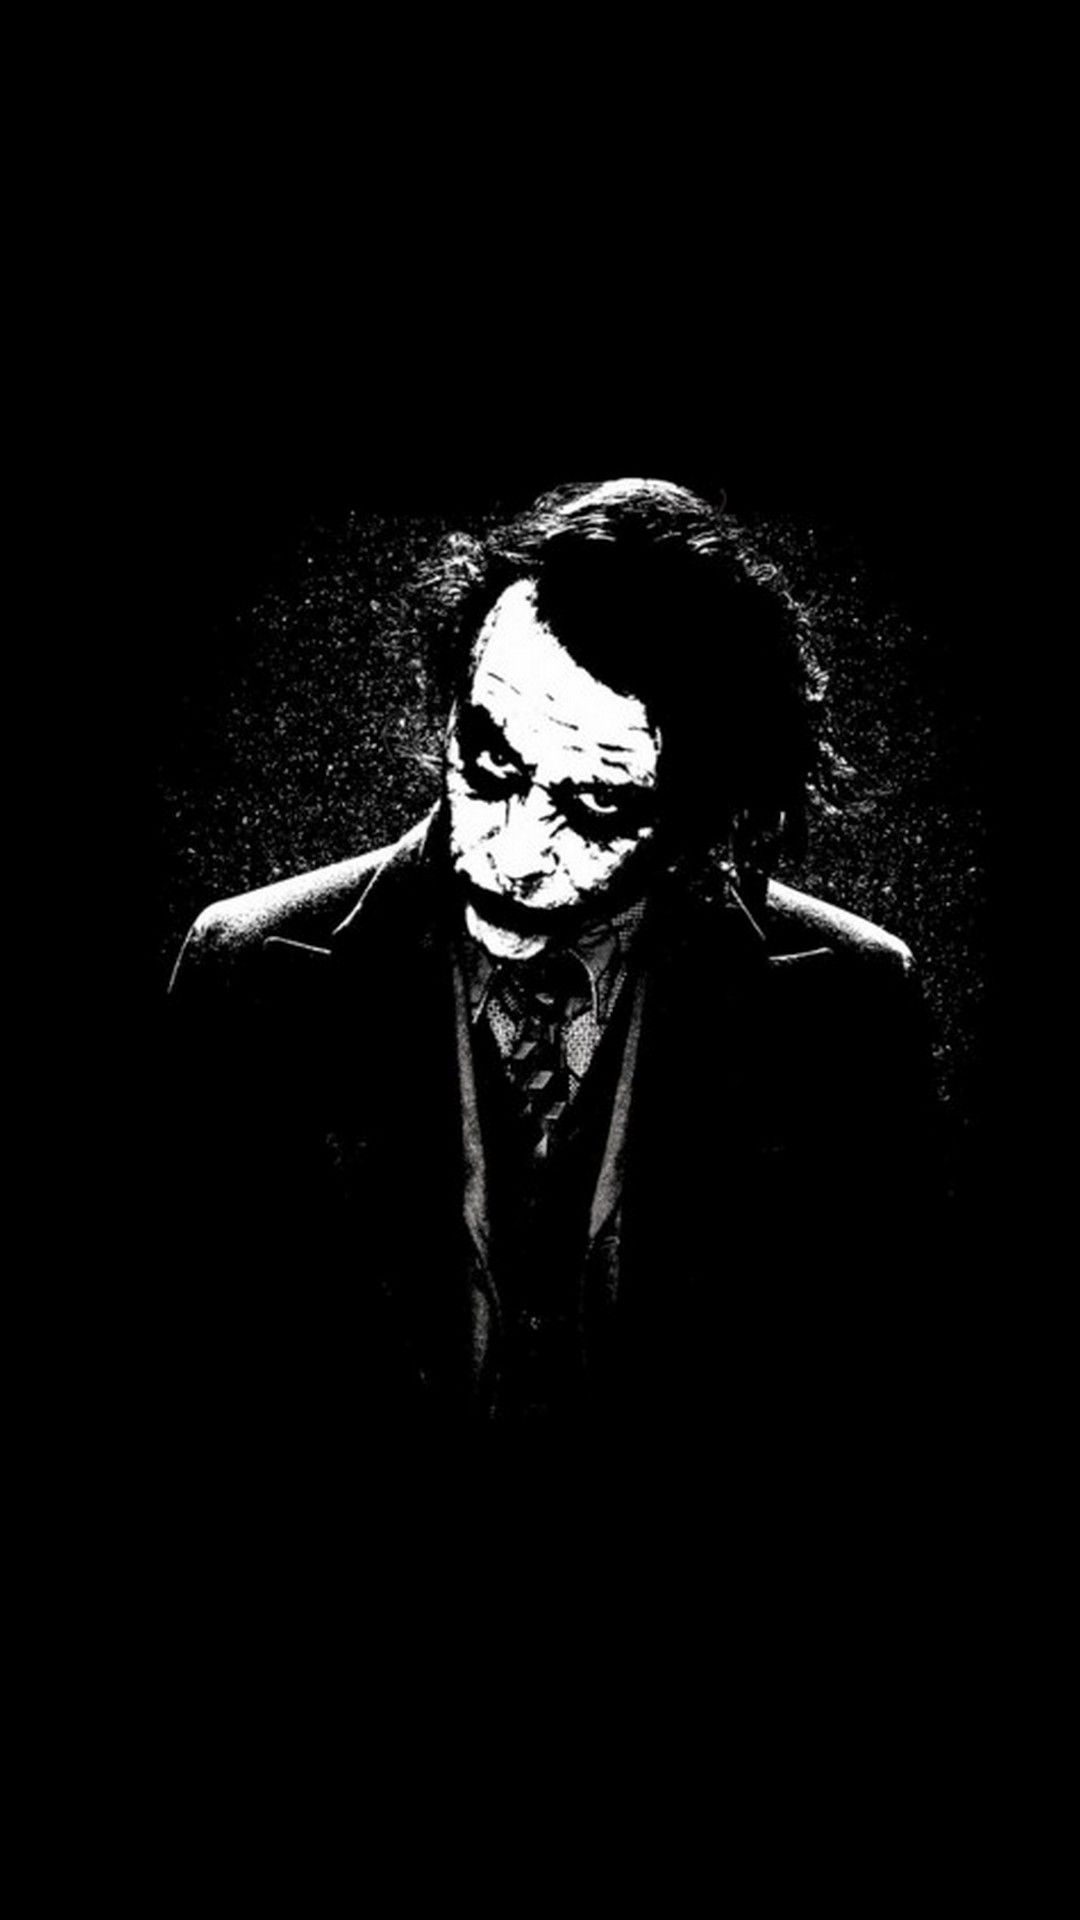 1080p Joker Black And White Wallpaper Hd